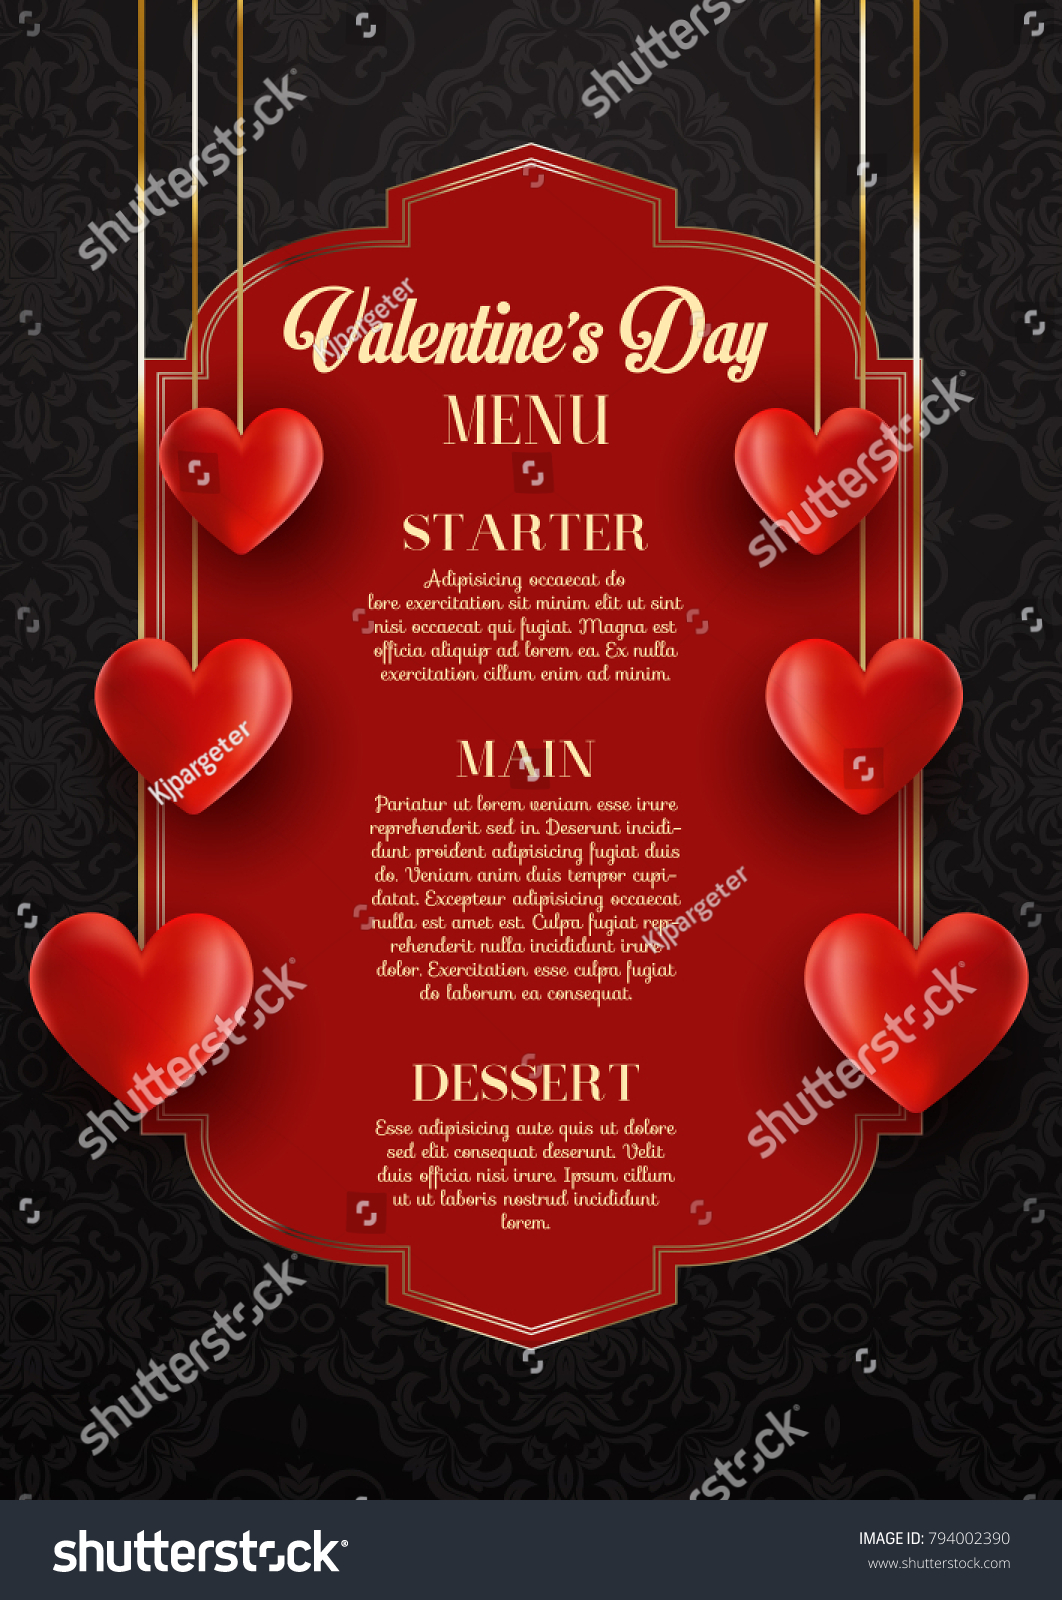 elegant menu design valentines day stock vector royalty free